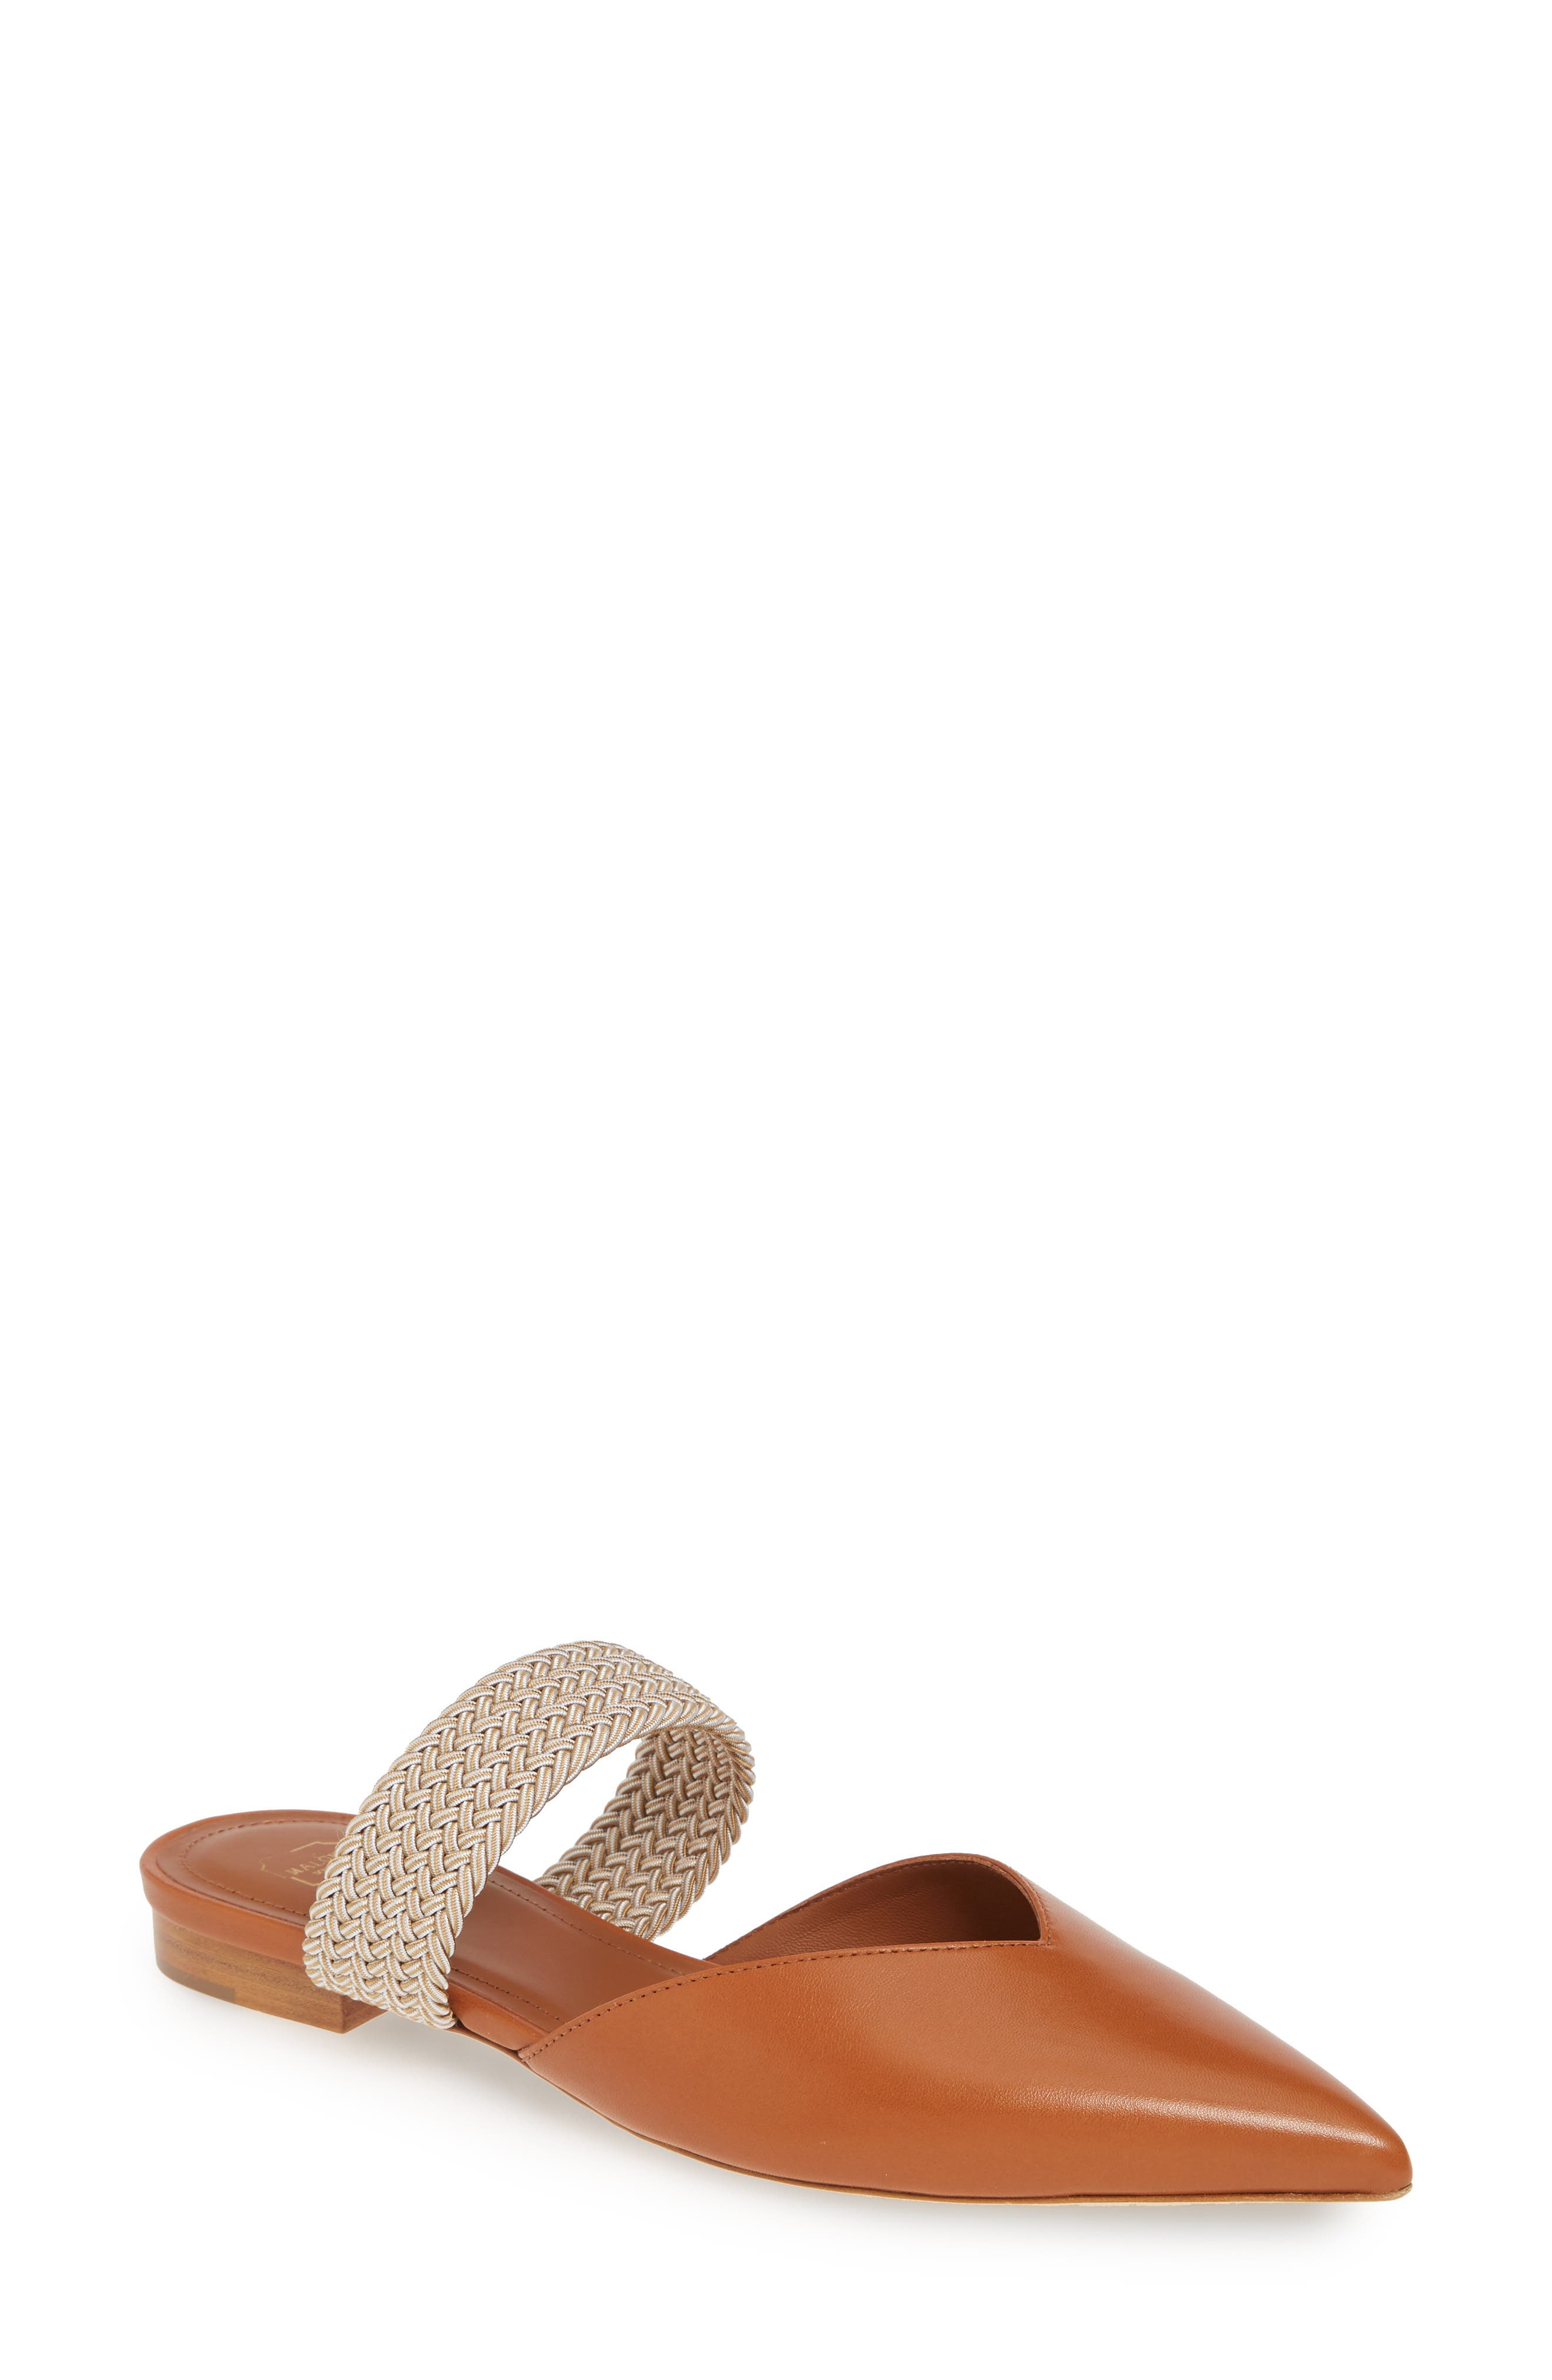 Malone Souliers Maisie Banded Mule - Brown